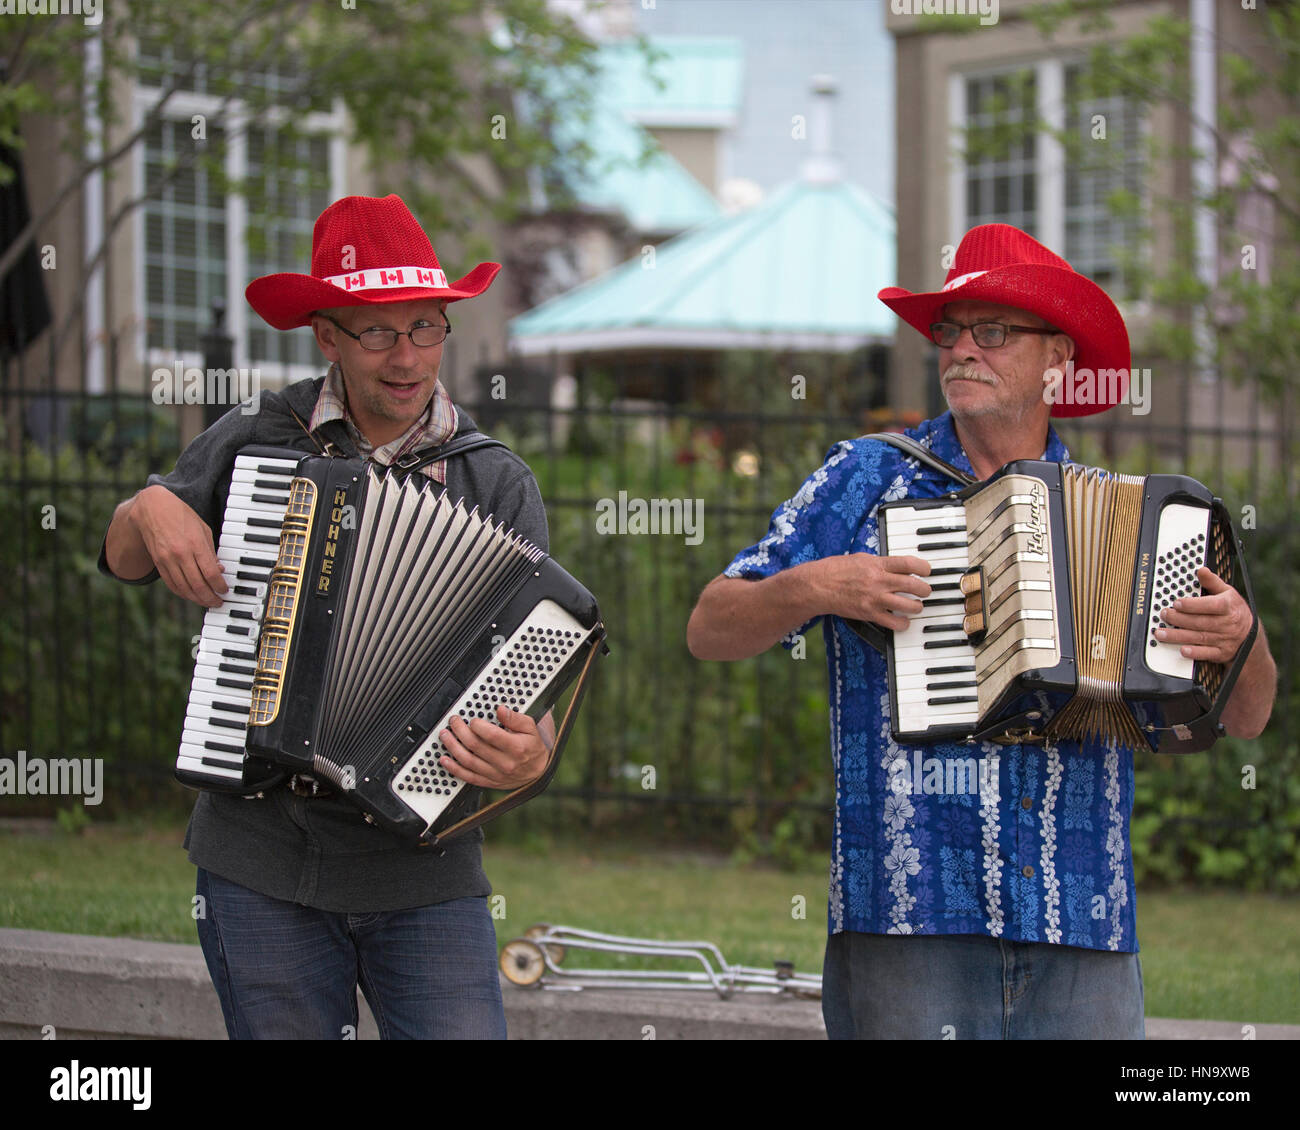 Buskerjames, street entertainers playing accordion during Canada Day celebrations in Eau Claire, downtown Calgary - Stock Image